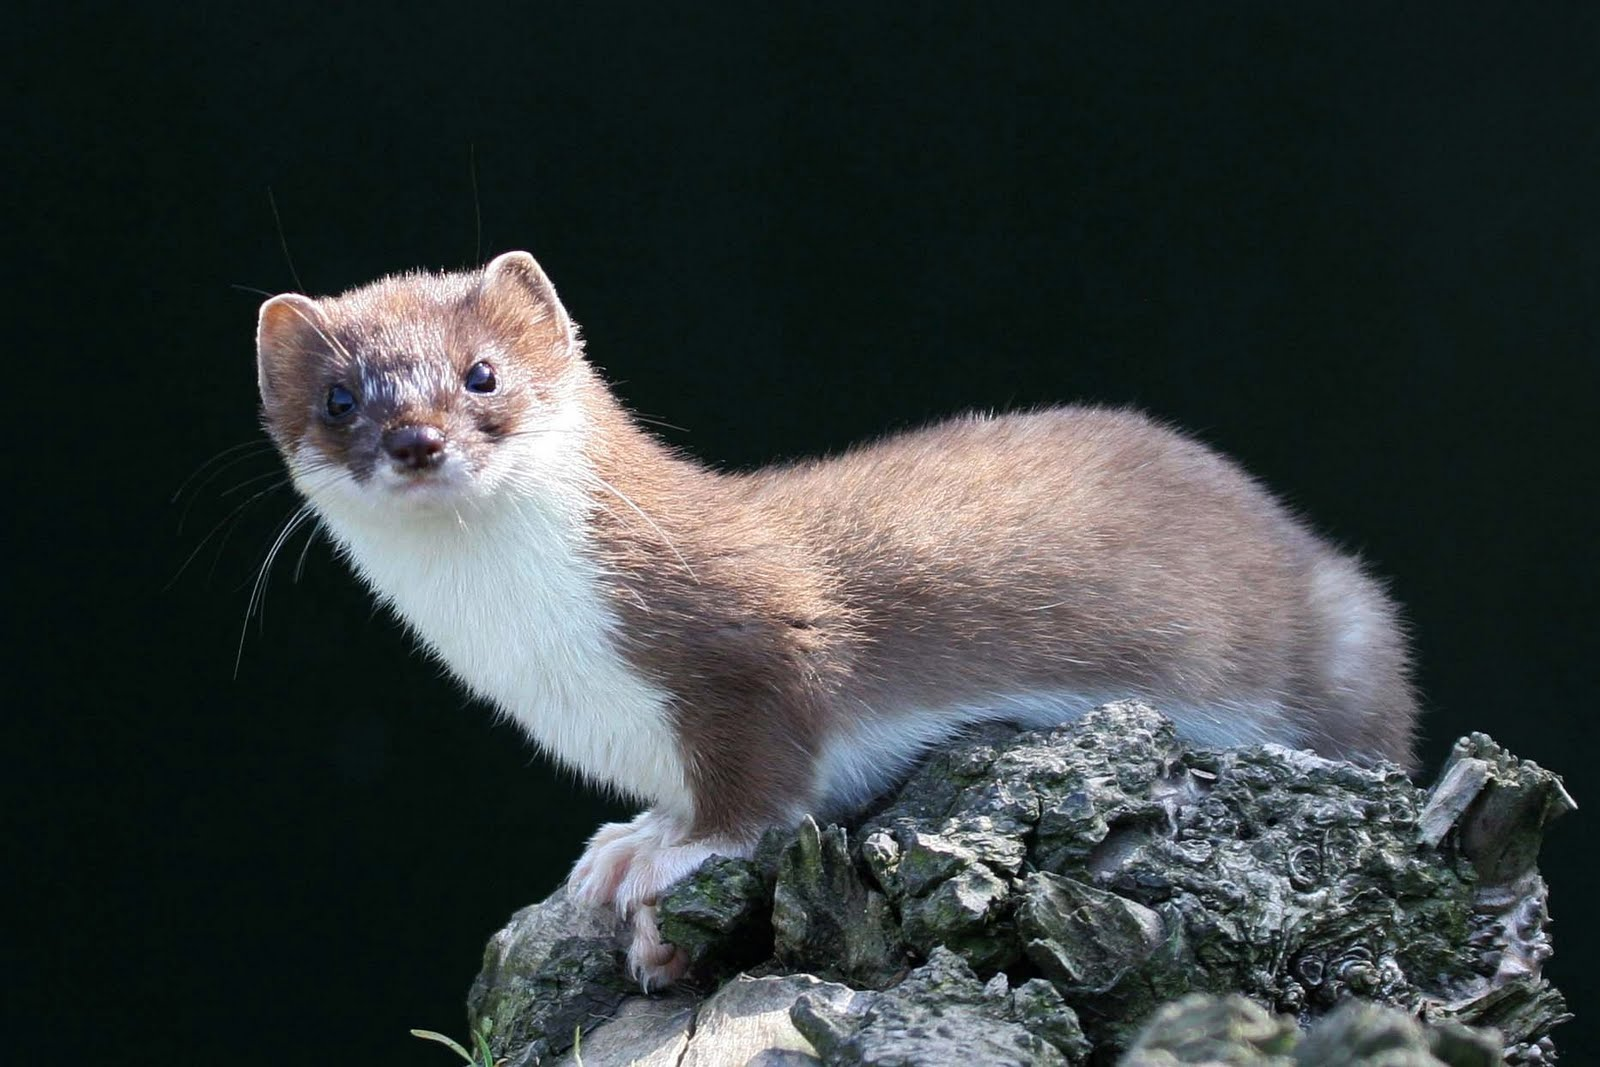 ermine black singles August furbearer playmate of the month weasel there are two species of weasels in alaska: the short-tailed weasel or ermine (mustela erminea) and the least weasel (mustela rixosa)these weasels range over north america and are found throughout most of alaska.